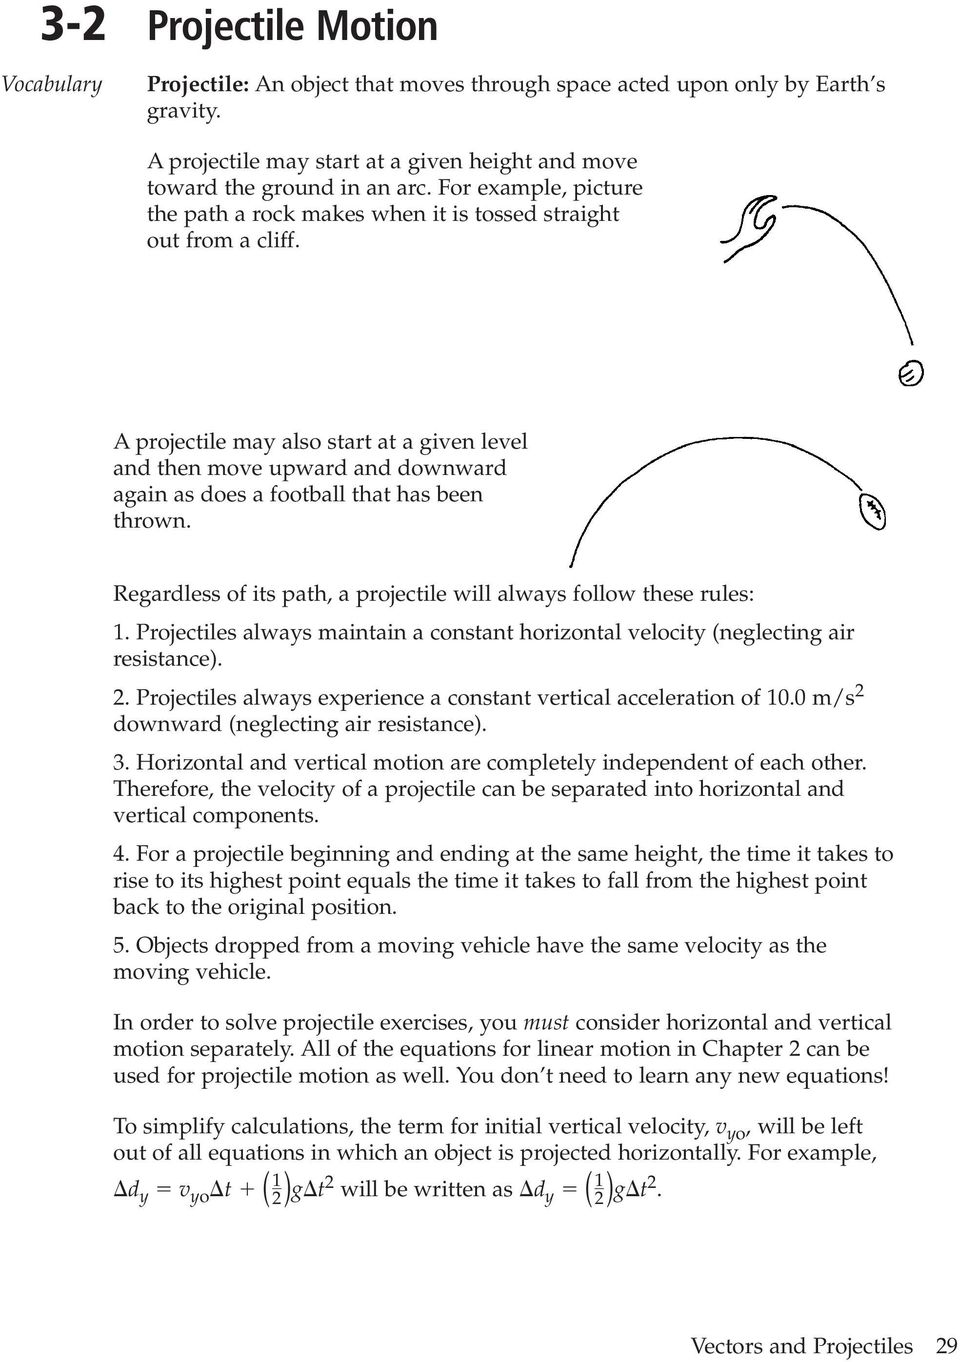 worksheet Vectors And Projectiles Worksheet 3 2 projectile motion pdf a may also start at given level and then move upward downward again